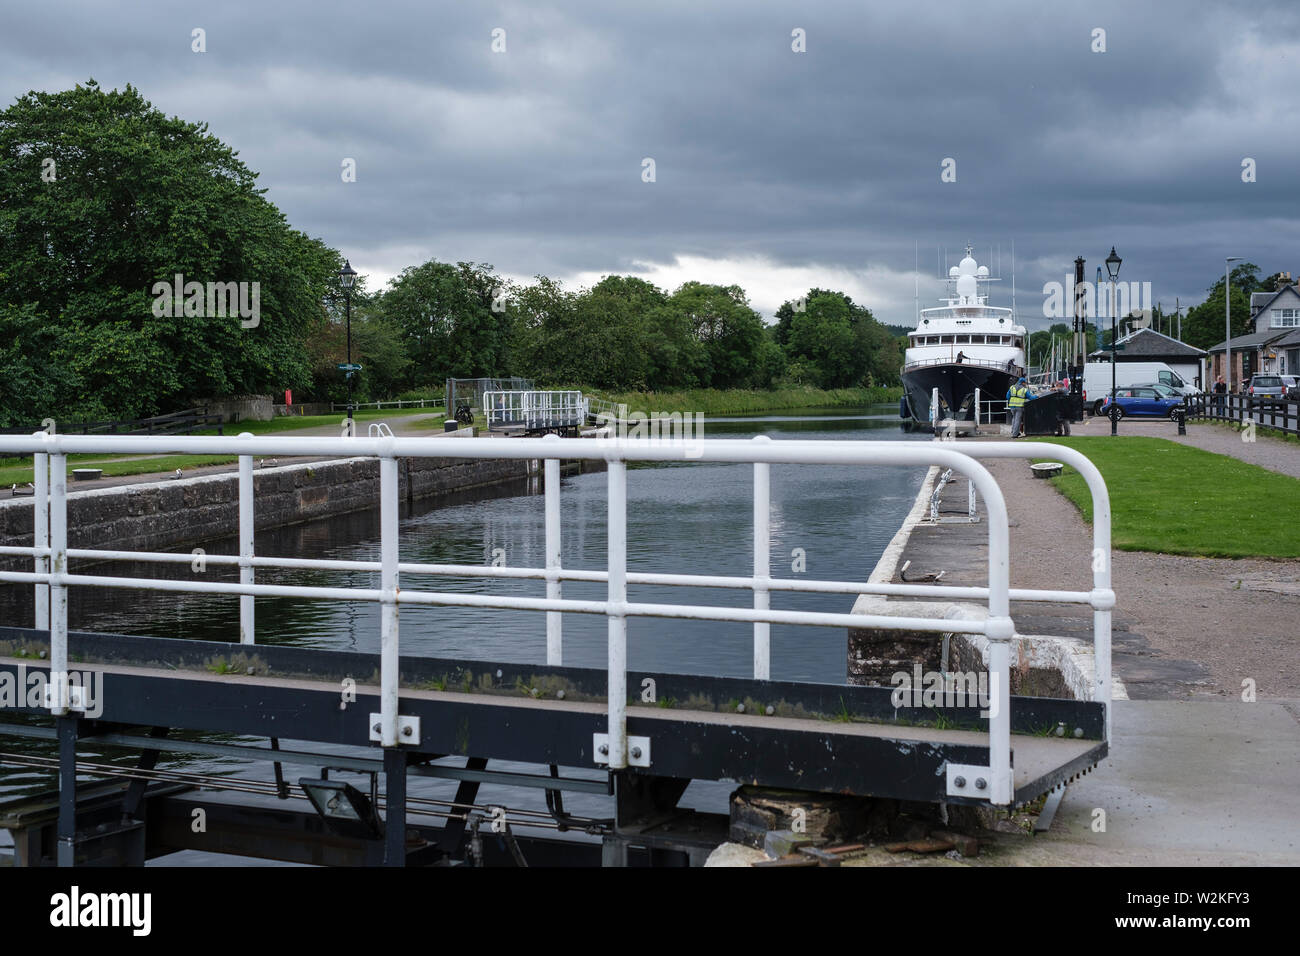 Luxury yacht 'Lady Rose' moored waiting to pass through Muirtown Locks, Caledonian Canal, Inverness - Stock Image